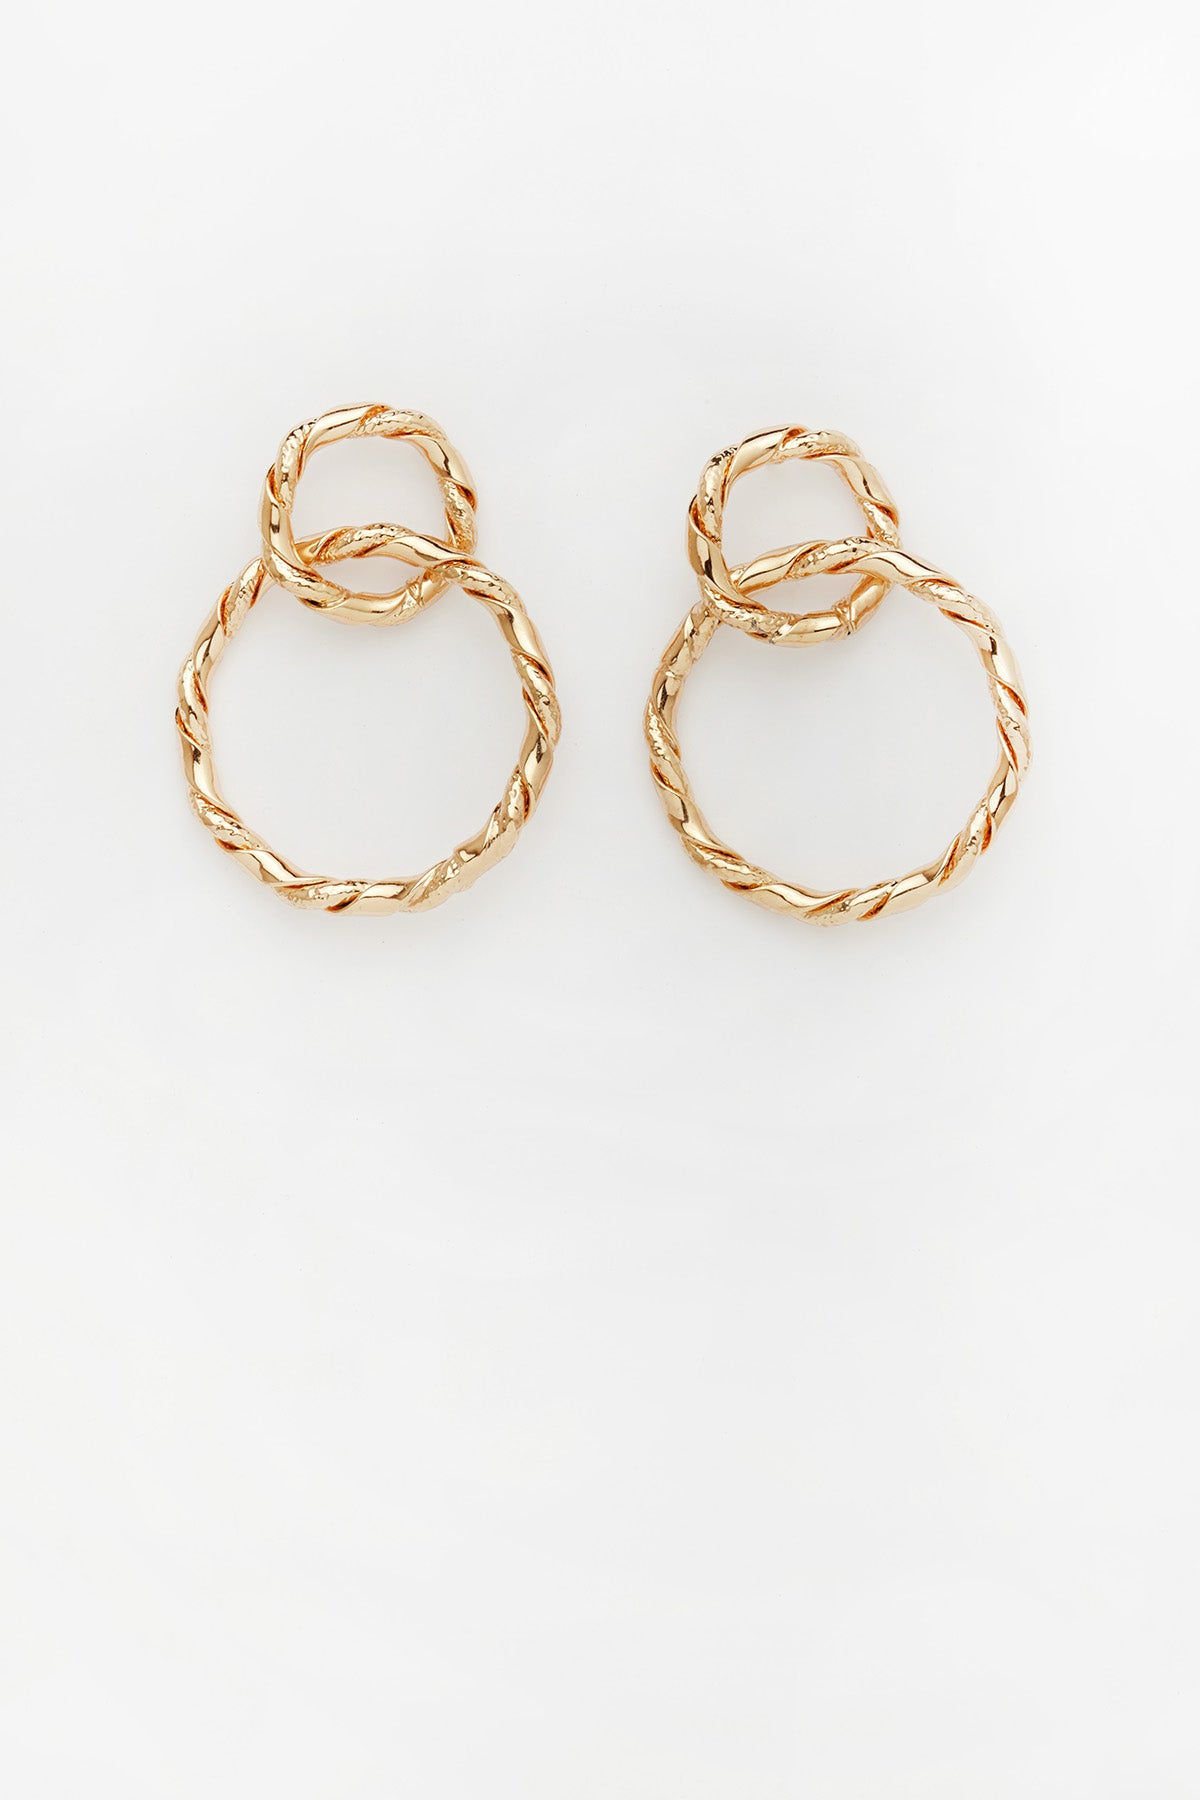 Eleanor Earrings